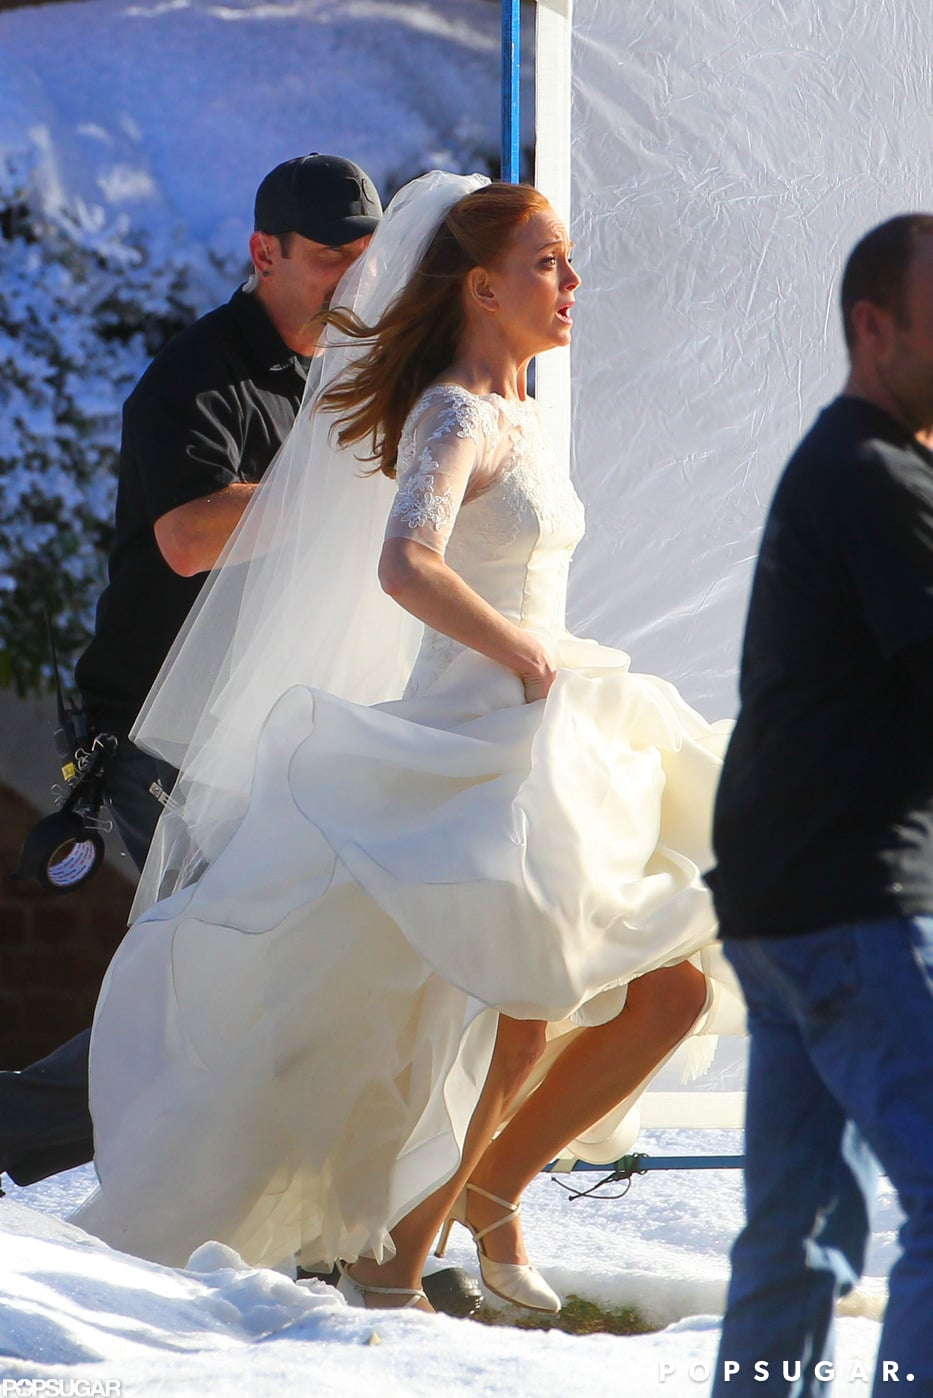 Jayma ran out of a building in a wedding dress.